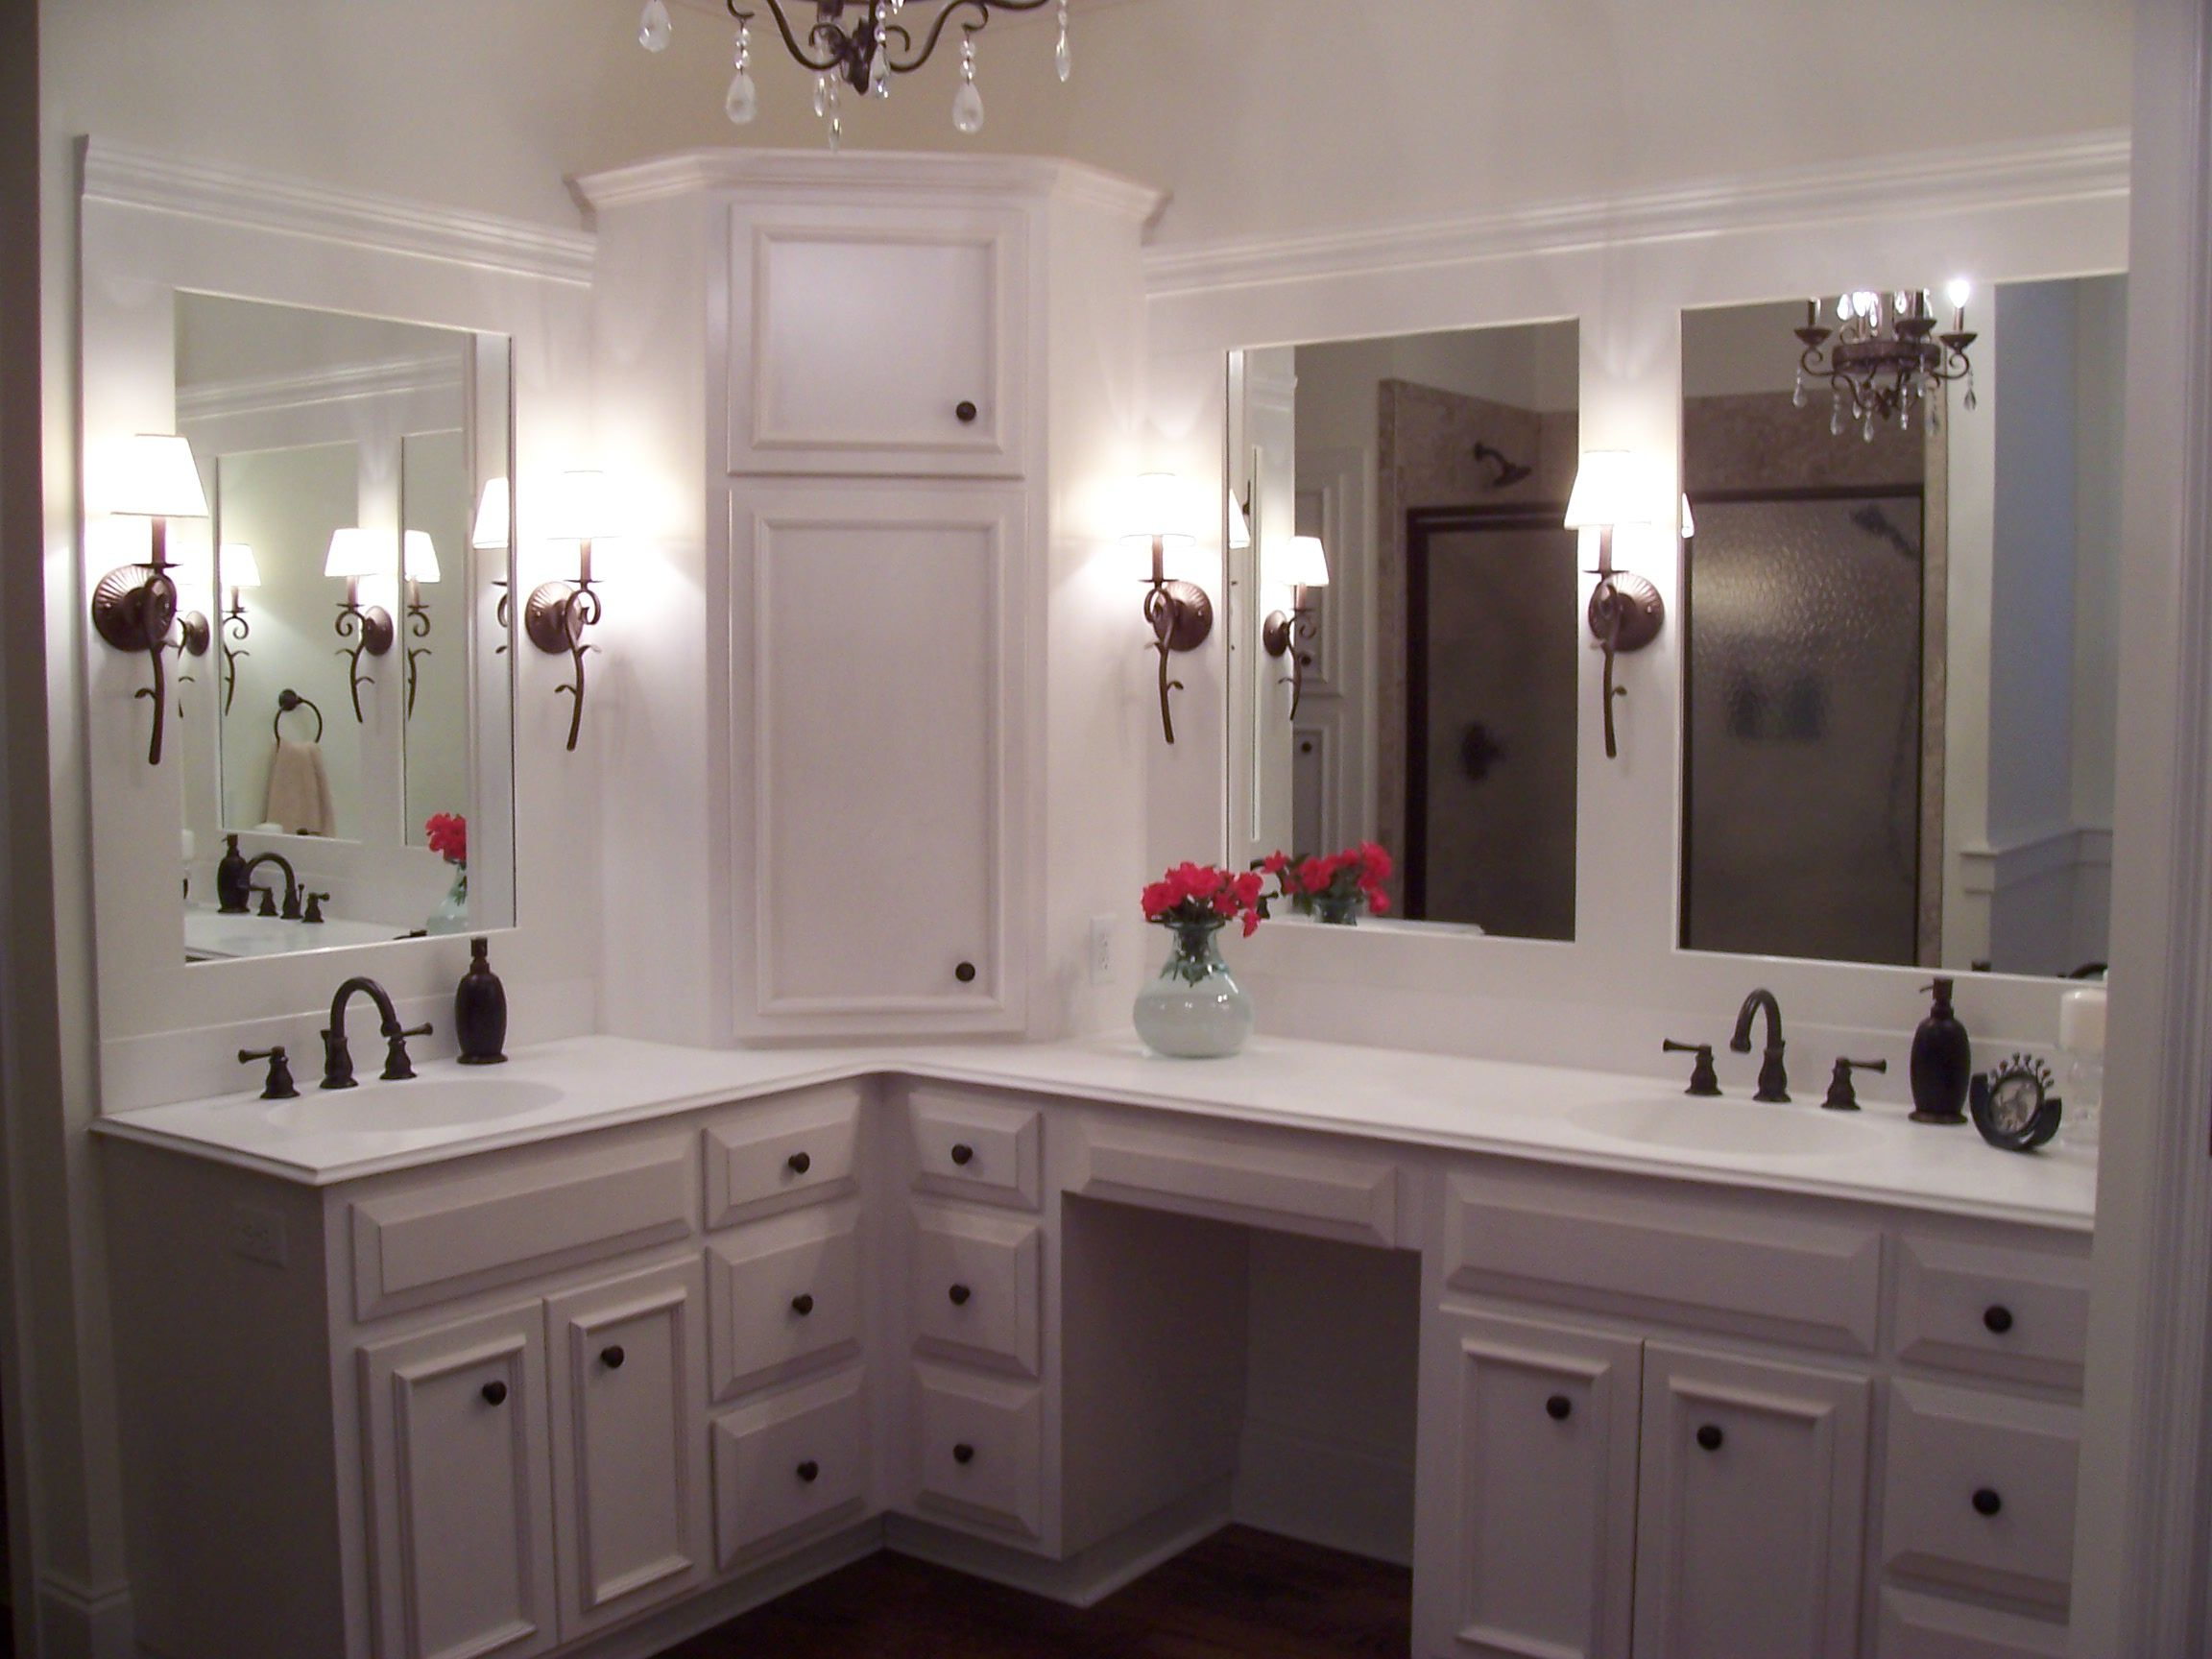 Small Corner Vanity Unit With Basin Of Bathroom Wall Mounted